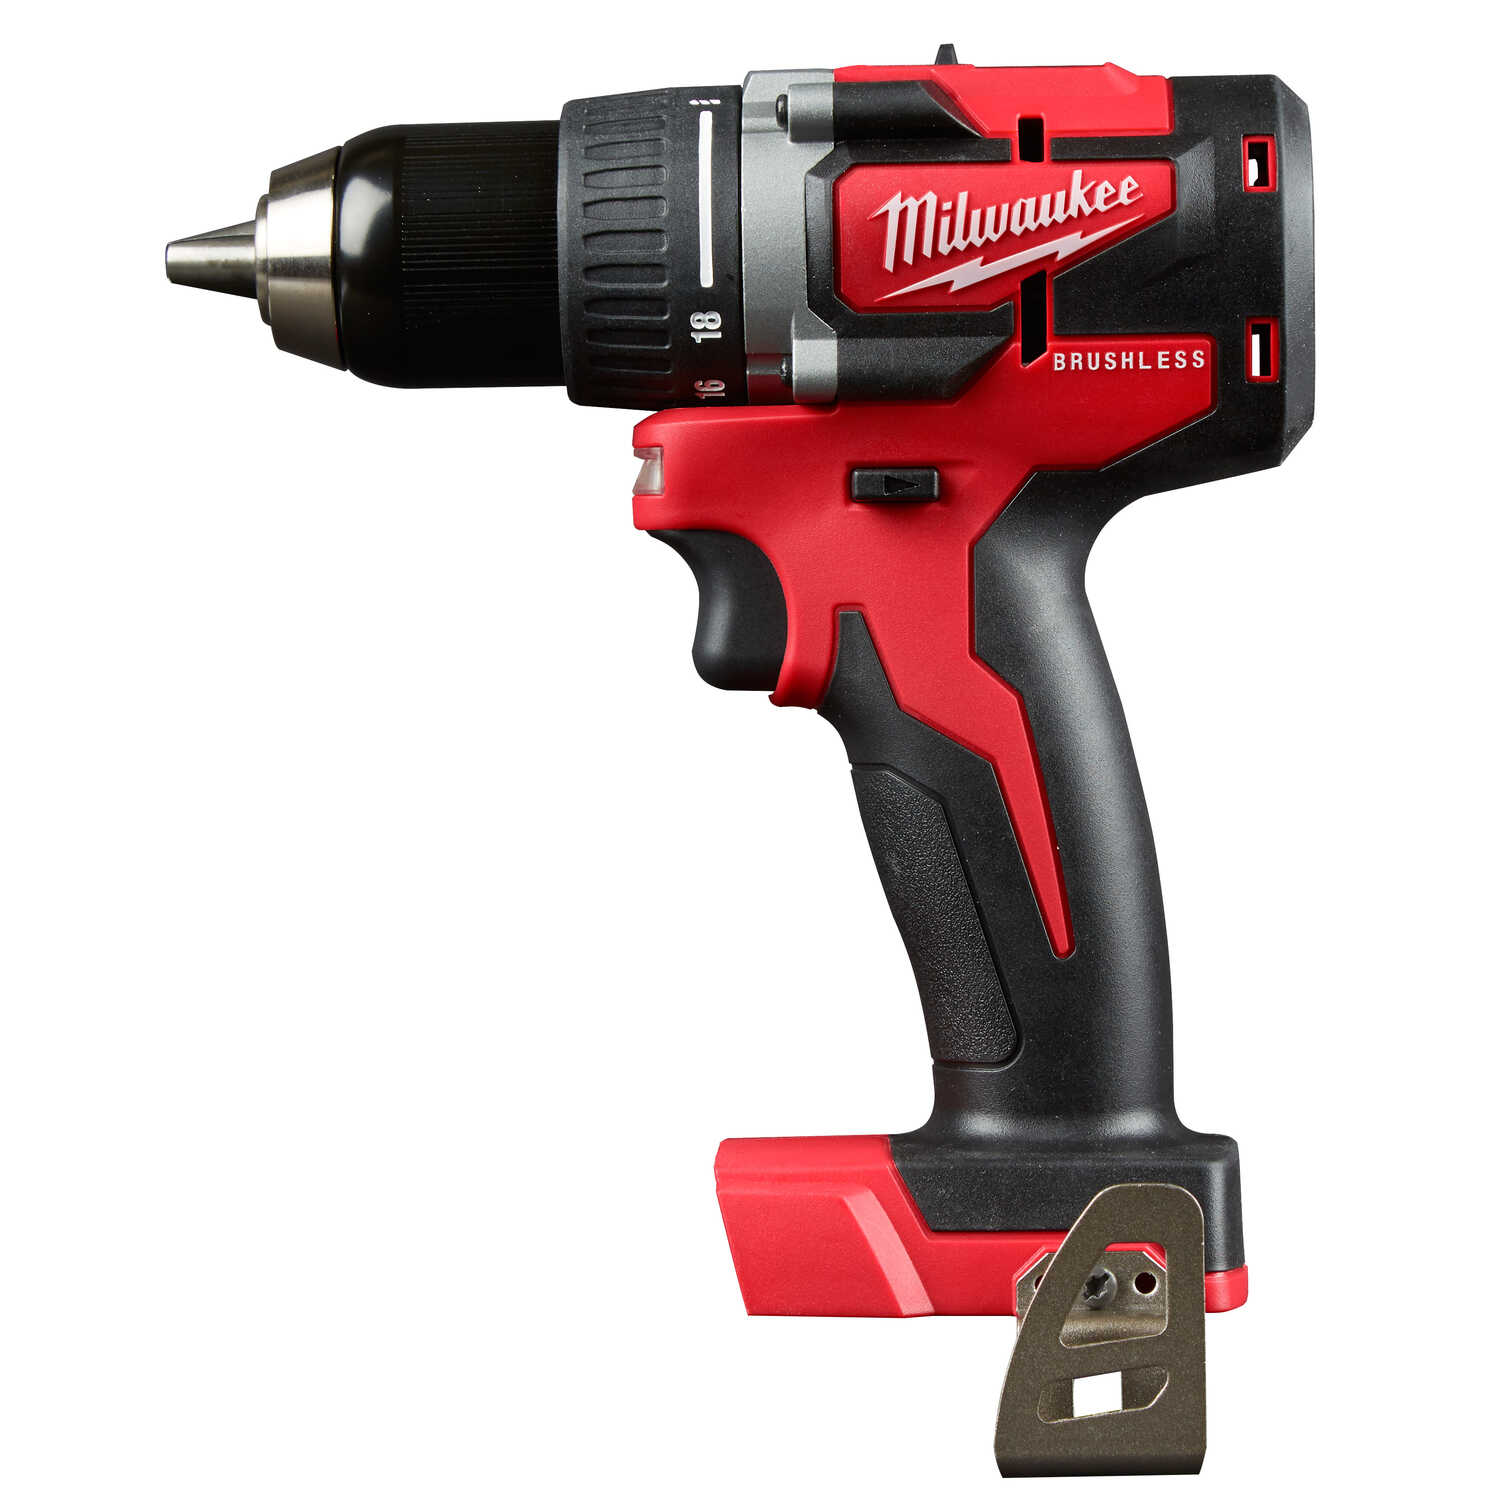 Milwaukee  M18  18 volt Brushless  Cordless Compact Drill/Driver  Bare Tool  1/2 in. 1800 rpm